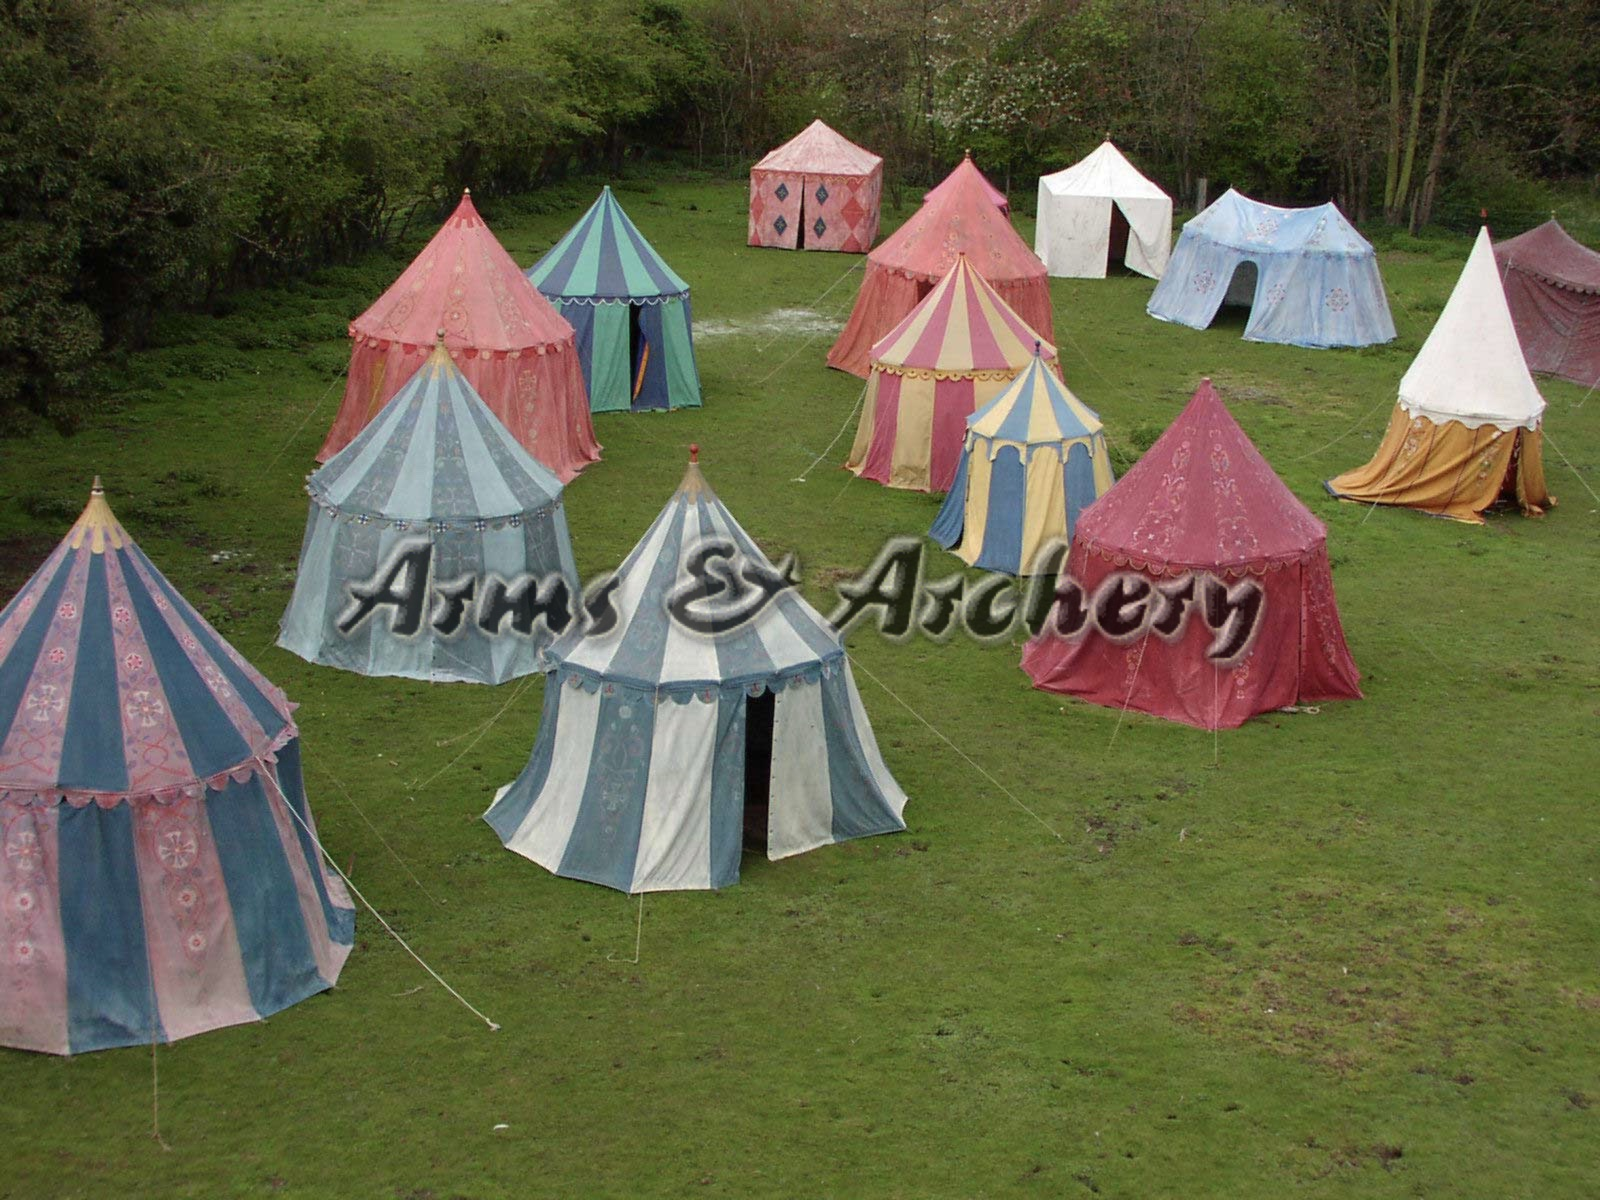 Canopies, Camping Ground, Google Images, Circus Tents, Tents Camping